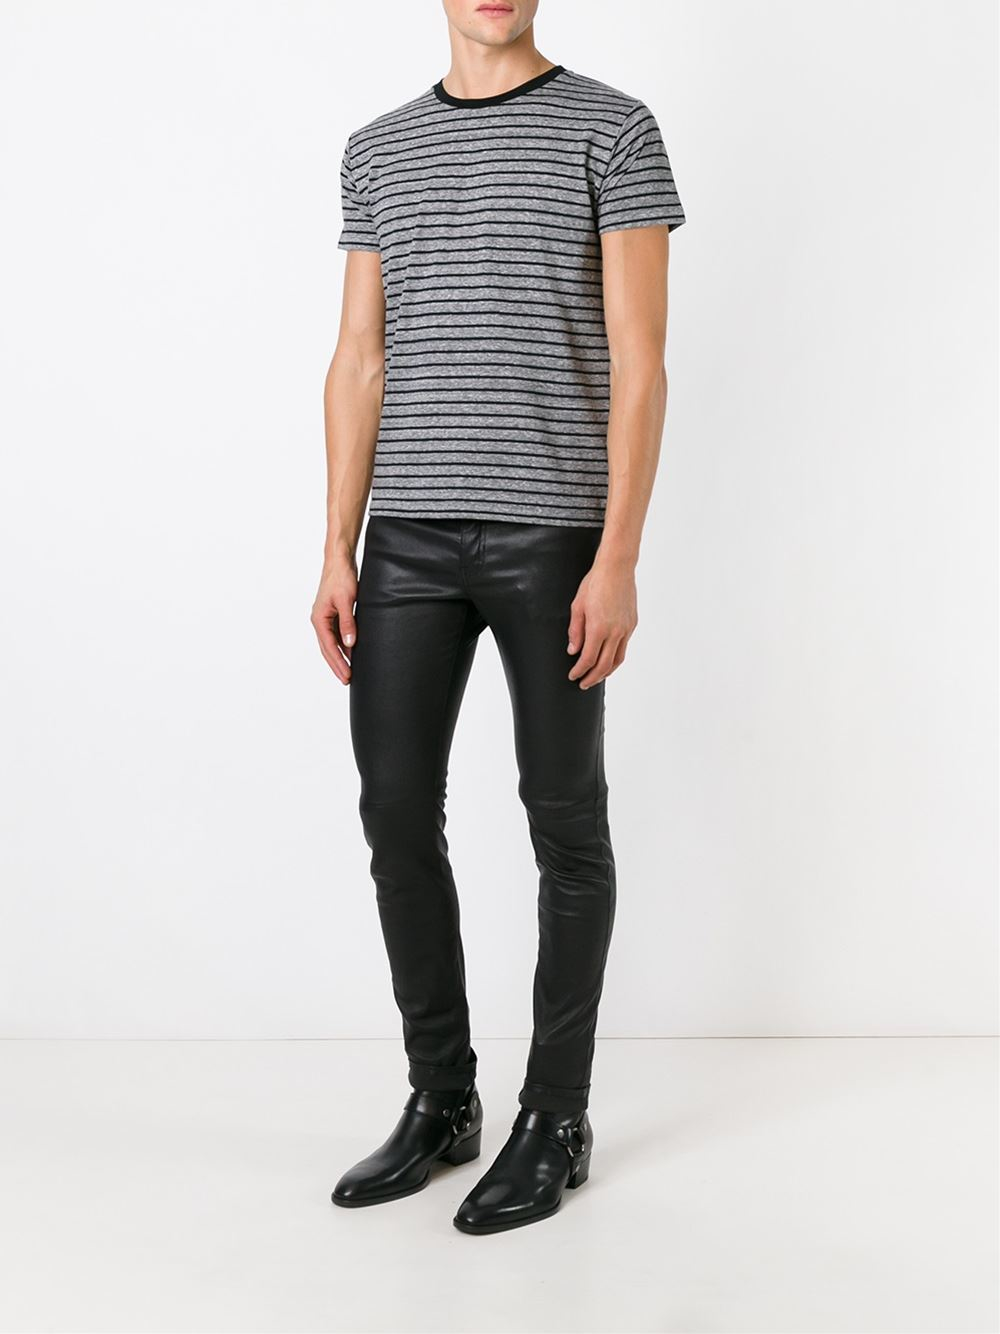 Saint laurent striped t shirt in gray for men grey lyst Grey striped t shirt